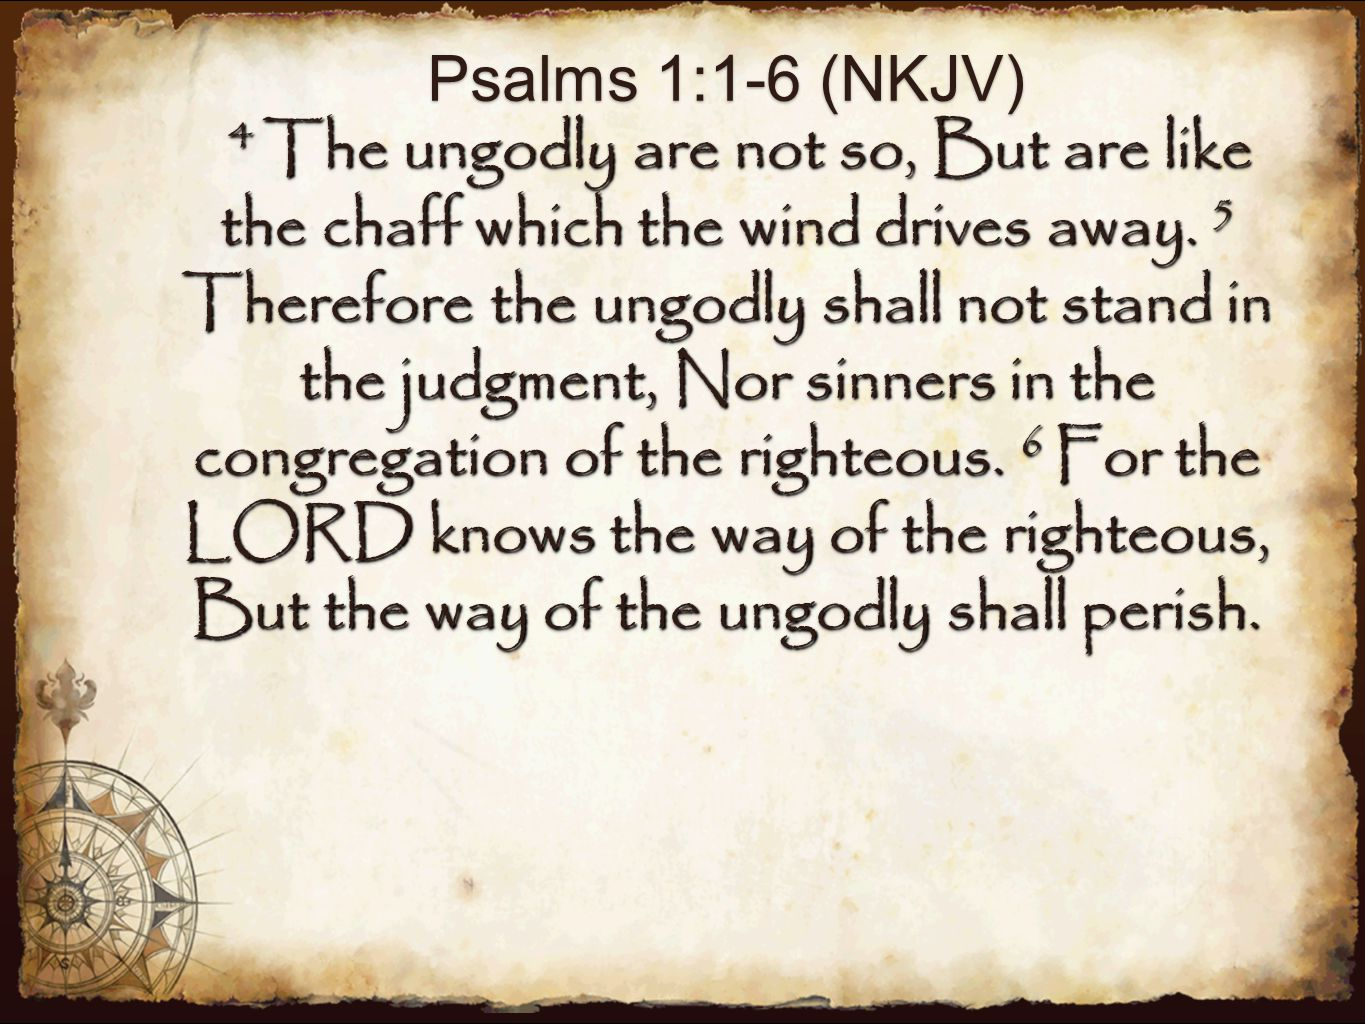 Psalms 1:1-6 (NKJV) 4 The ungodly are not so, But are like the chaff which the wind drives away.